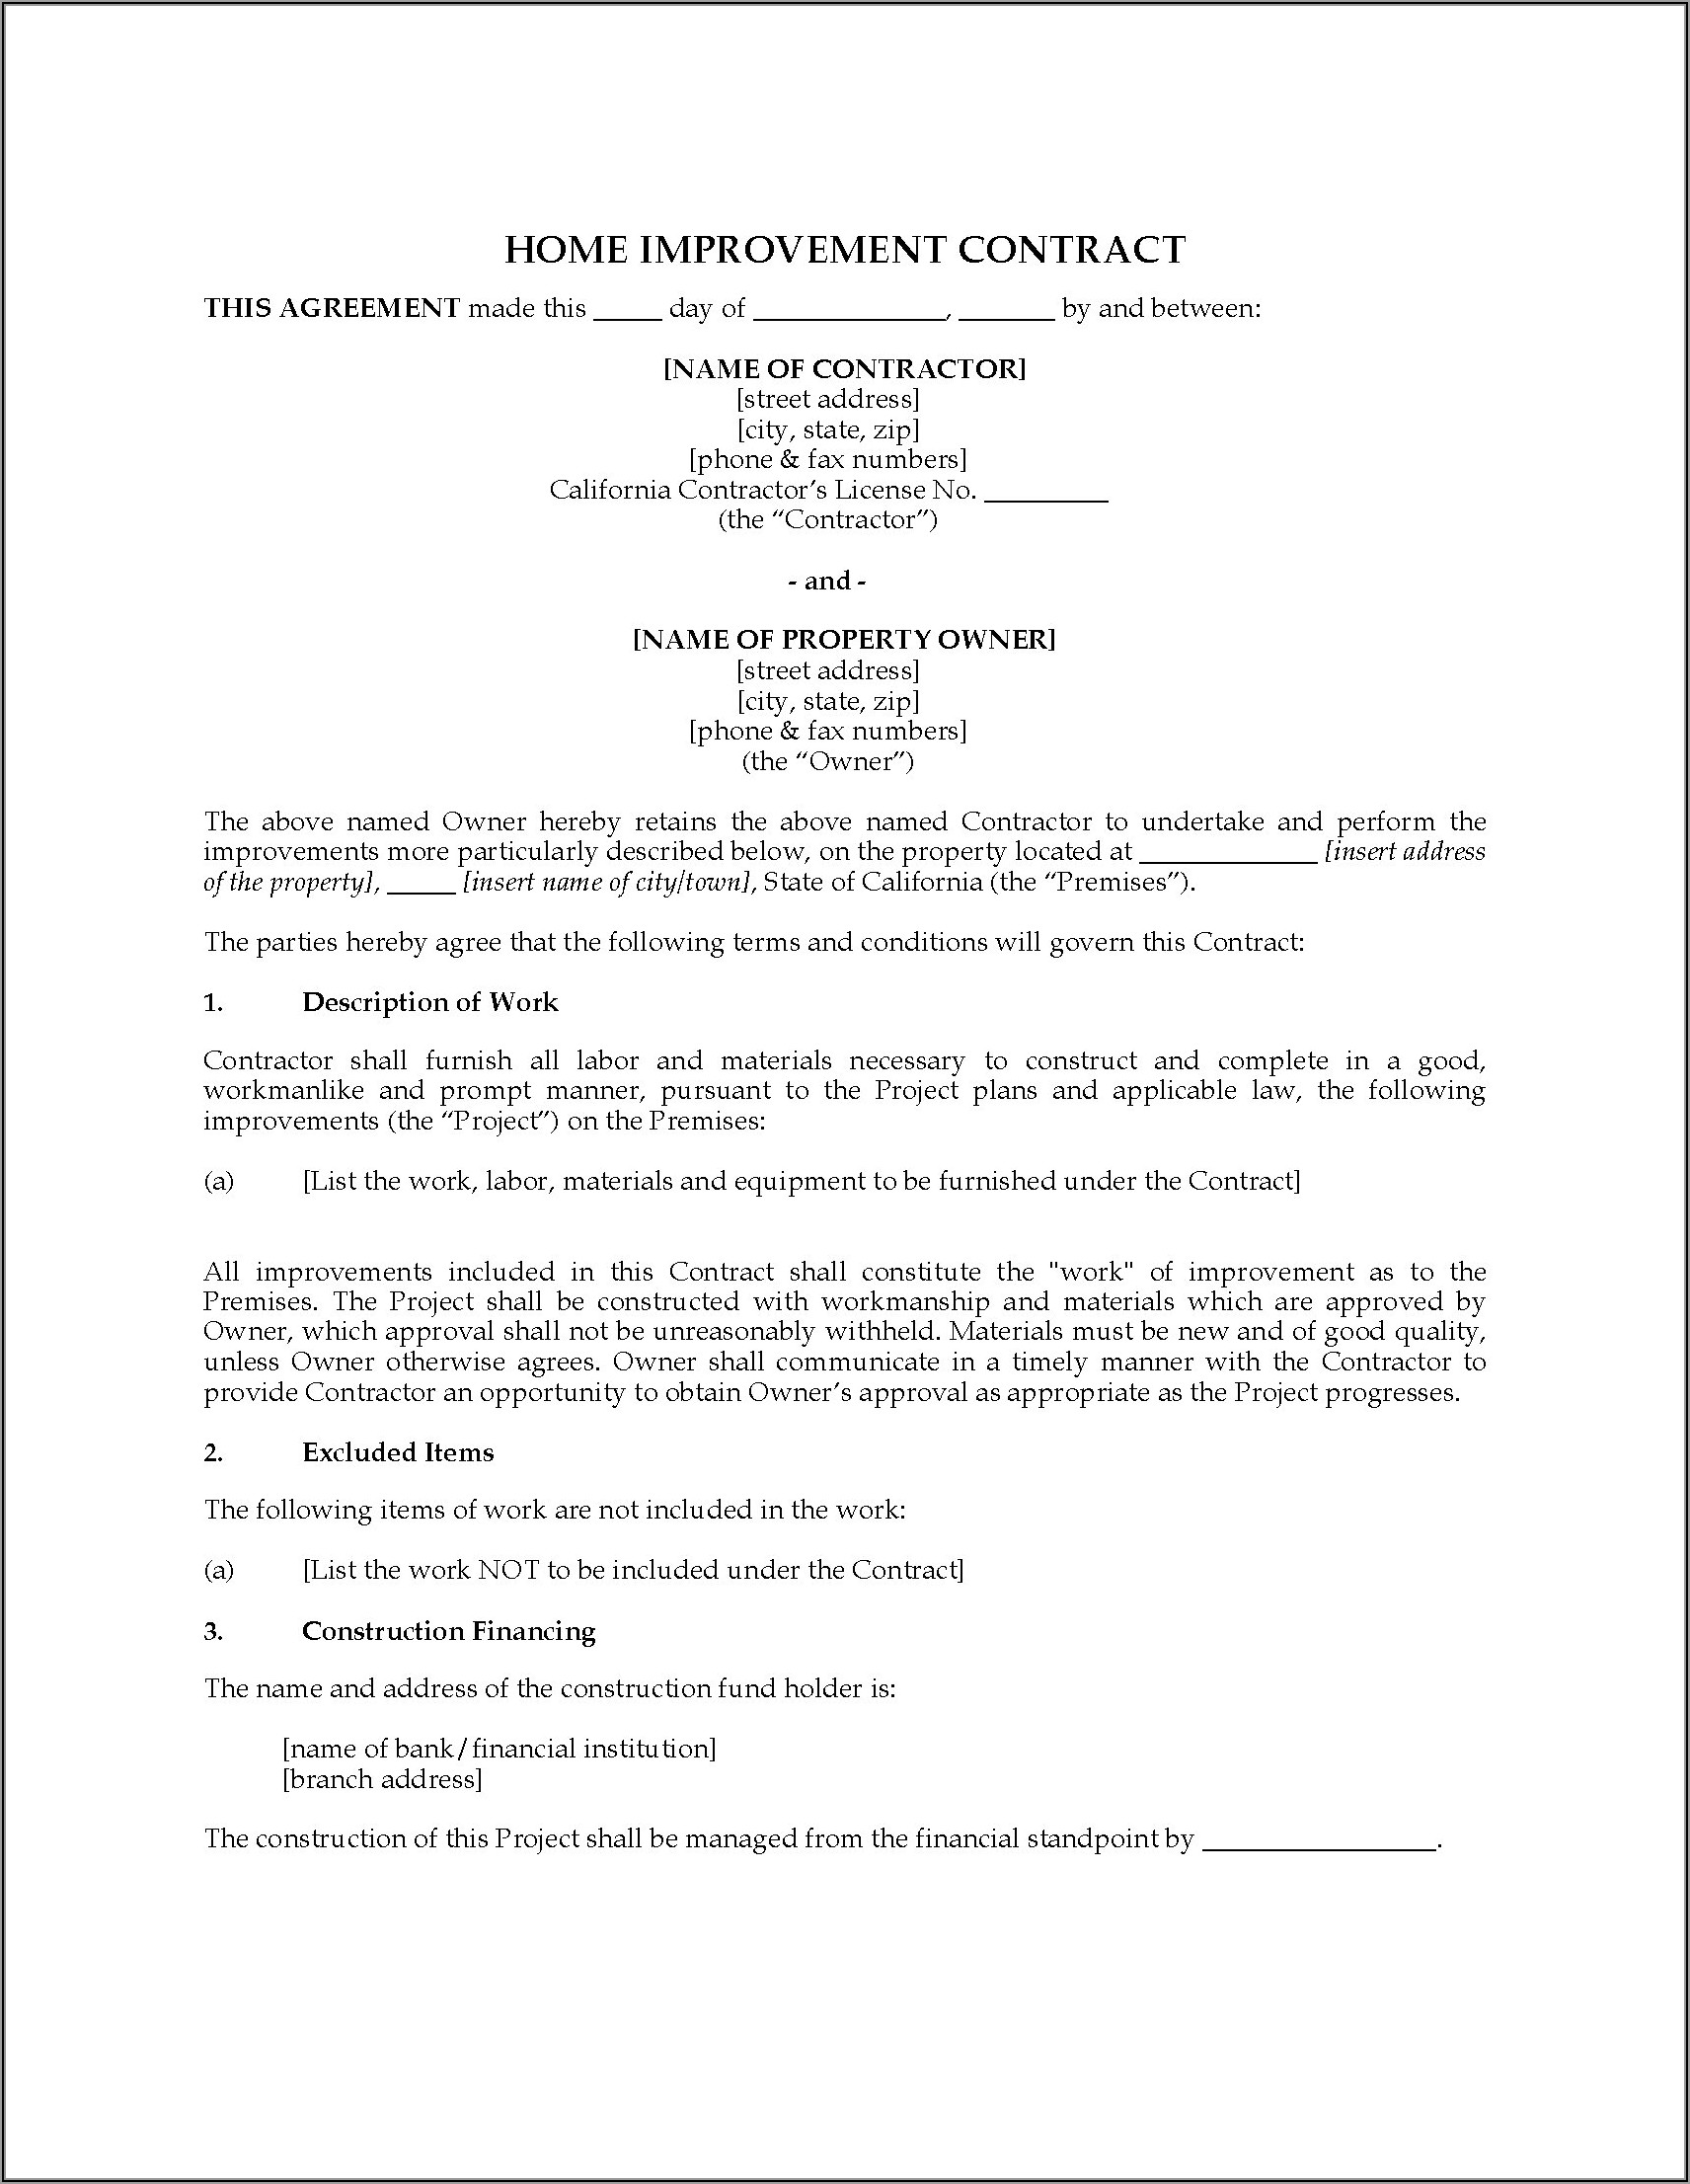 Home Improvement Contract Template Nj